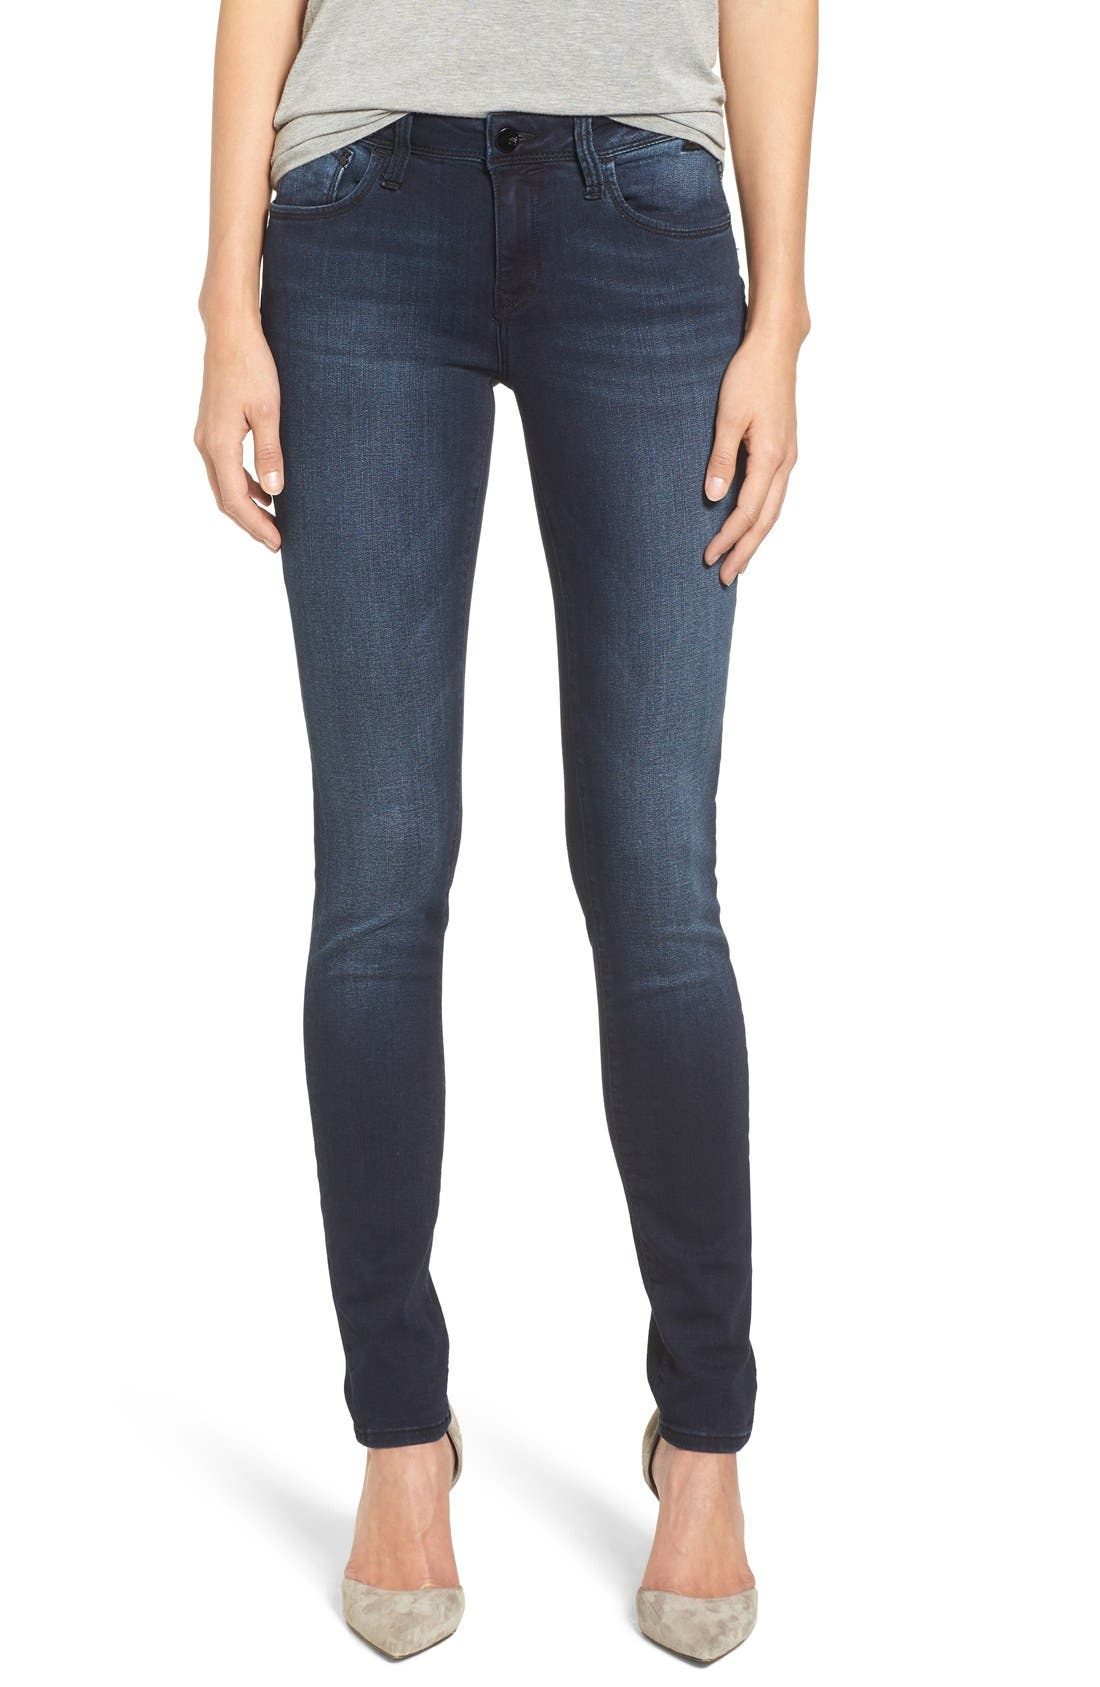 Alternate Image 1 Selected - Mavi Jeans Gold Alexa Stretch Skinny Jeans (Deep Feather) (Regular & Petite)